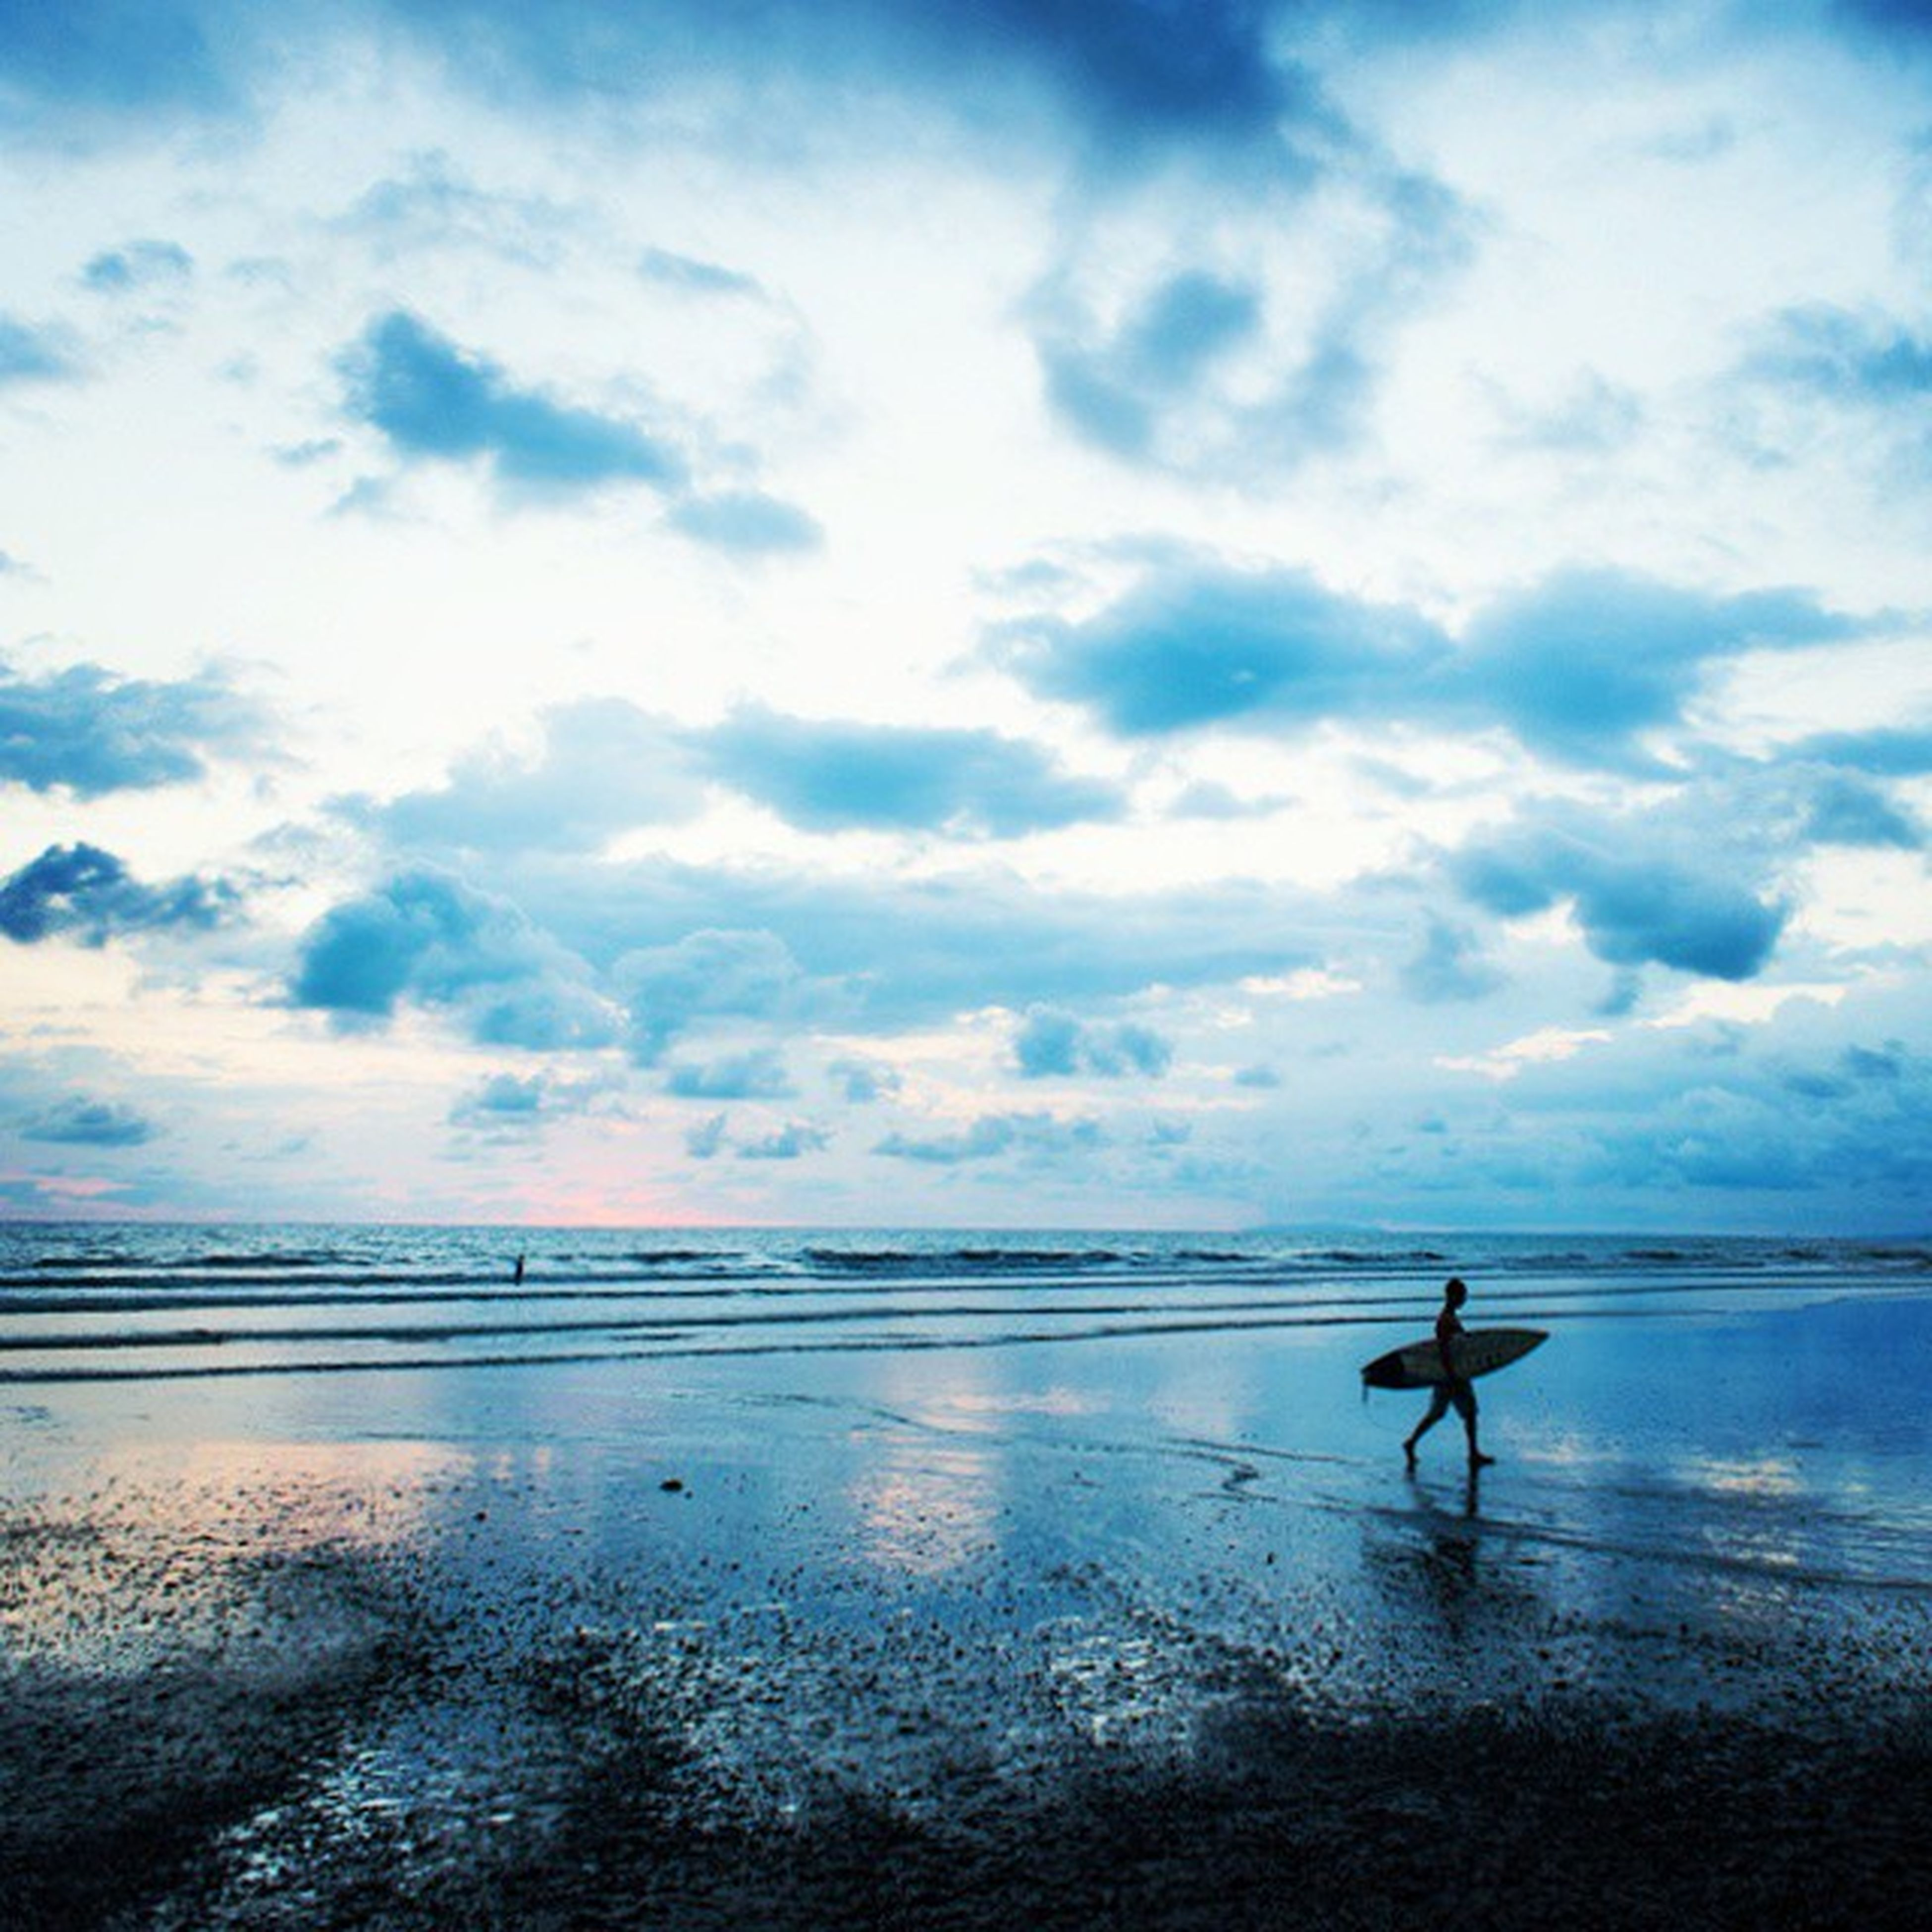 sea, horizon over water, water, sky, beach, tranquil scene, tranquility, scenics, cloud - sky, beauty in nature, silhouette, cloud, reflection, nature, shore, cloudy, idyllic, waterfront